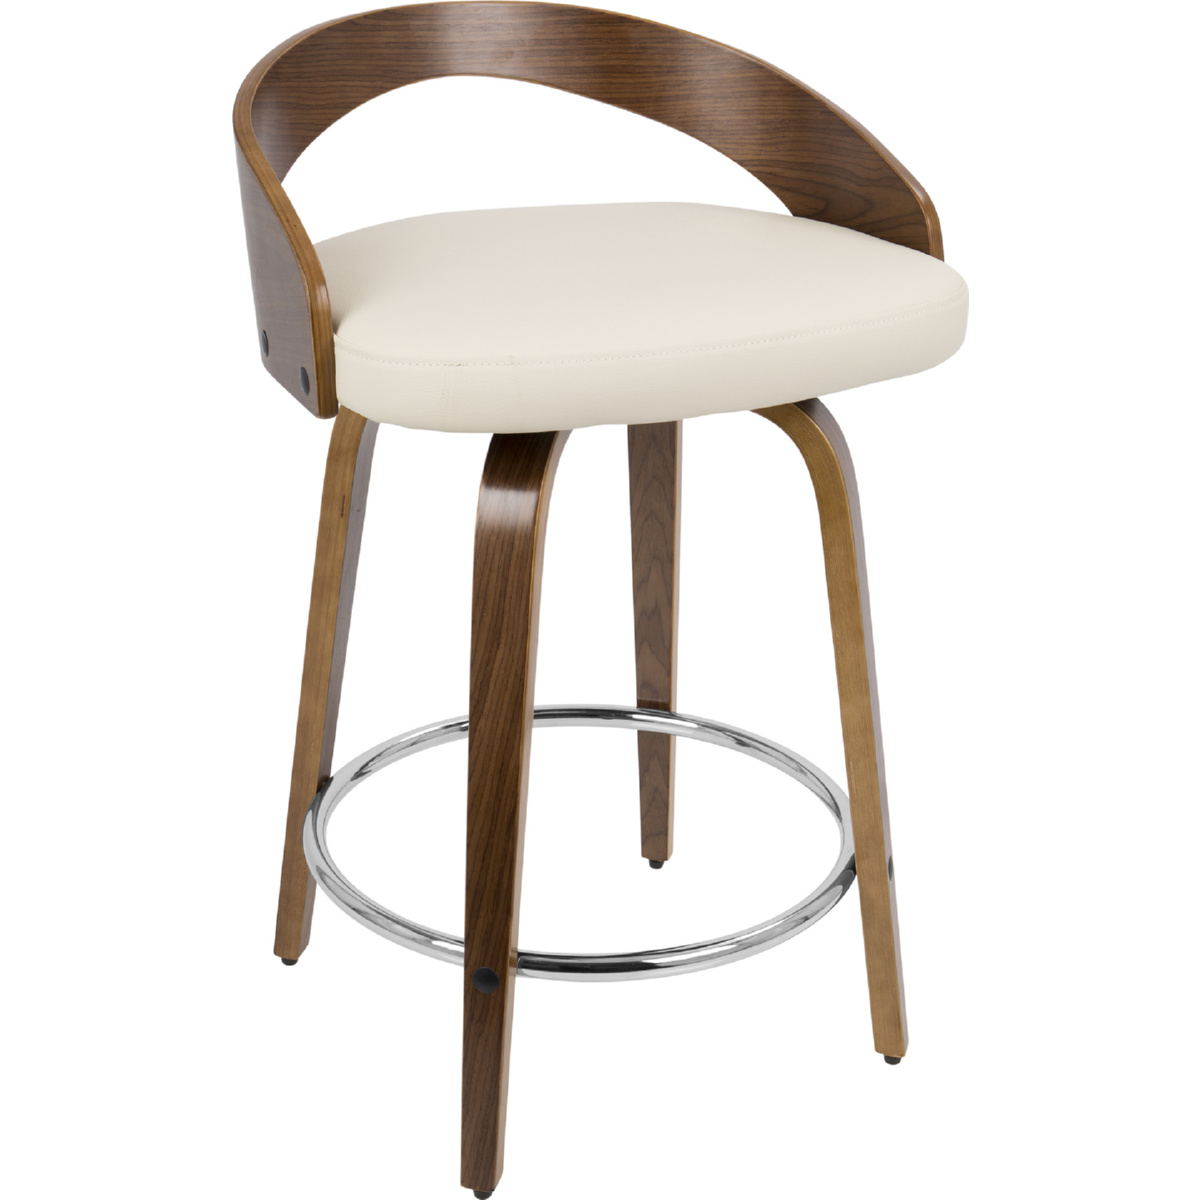 Lumisource Cs Jy Grt Wl Cr Grotto Swivel Counter Stool In